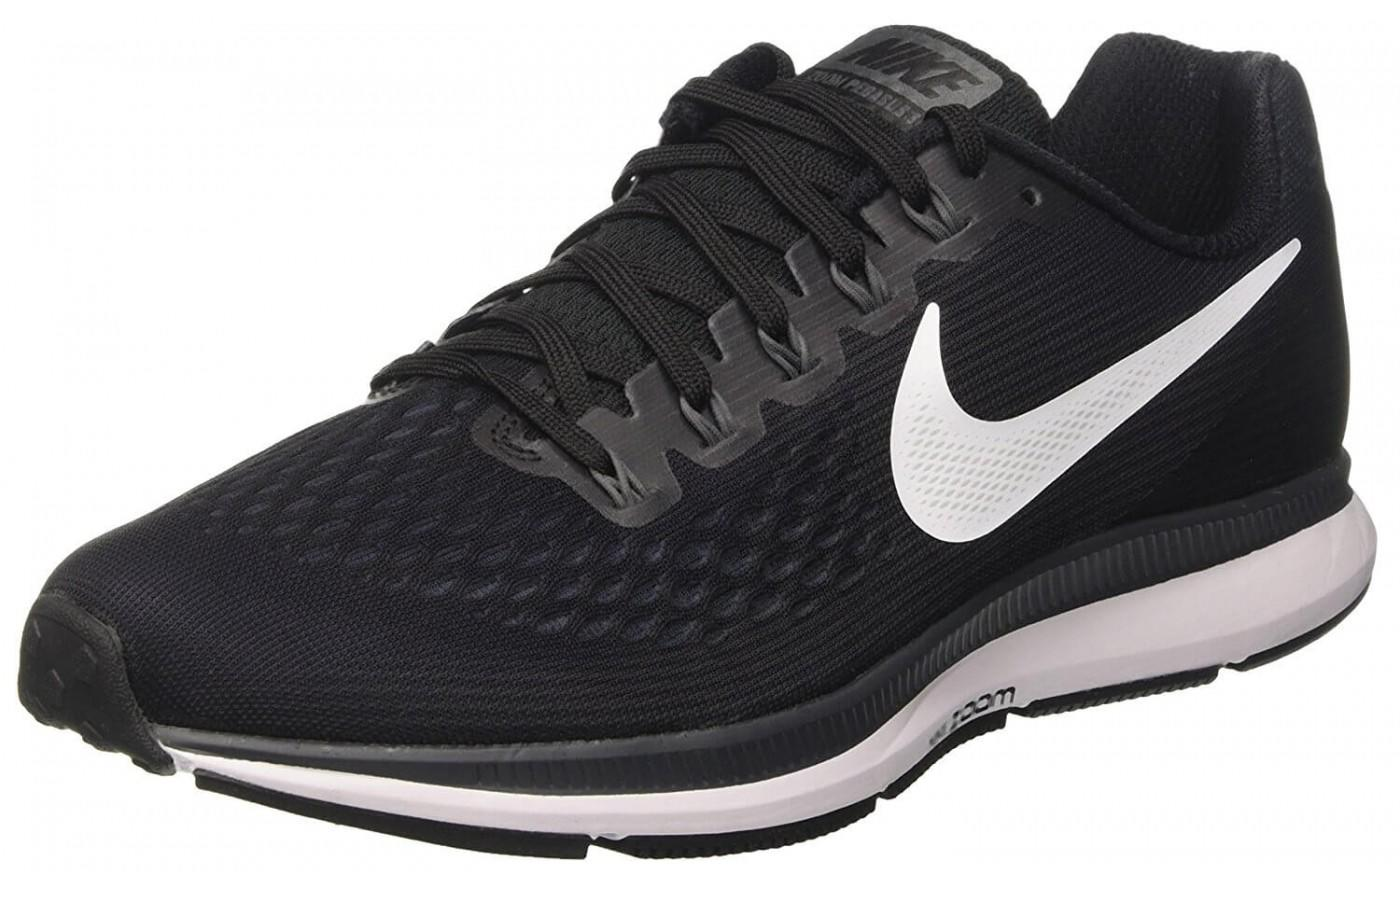 9a6c043d1082 the upper of the Nike Air Zoom Pegasus 34 is made of breathable Flymesh ...